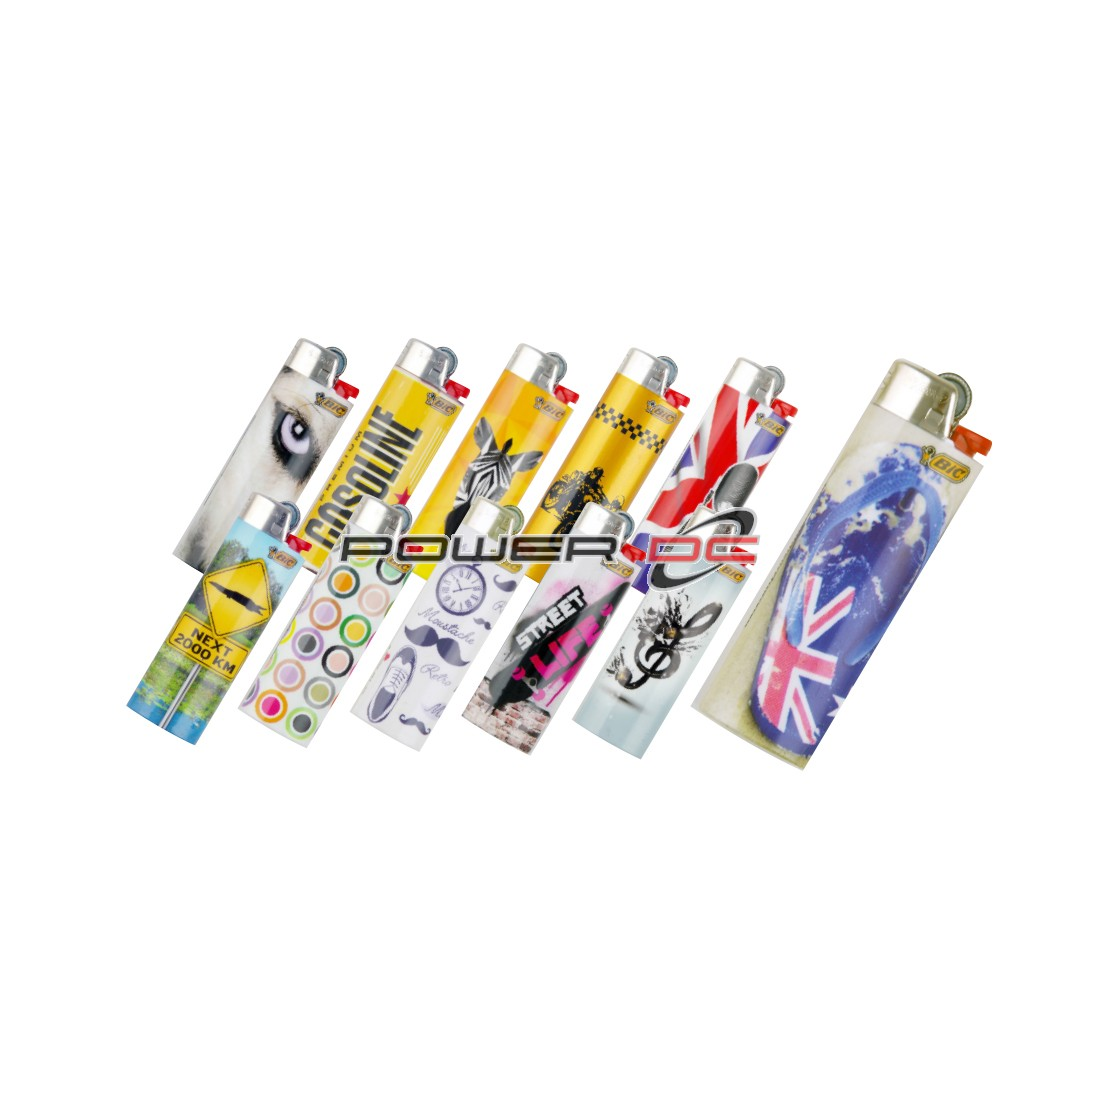 BIC MAXI LIGHTER THEME SLEEVED TRAY OF 50PCS